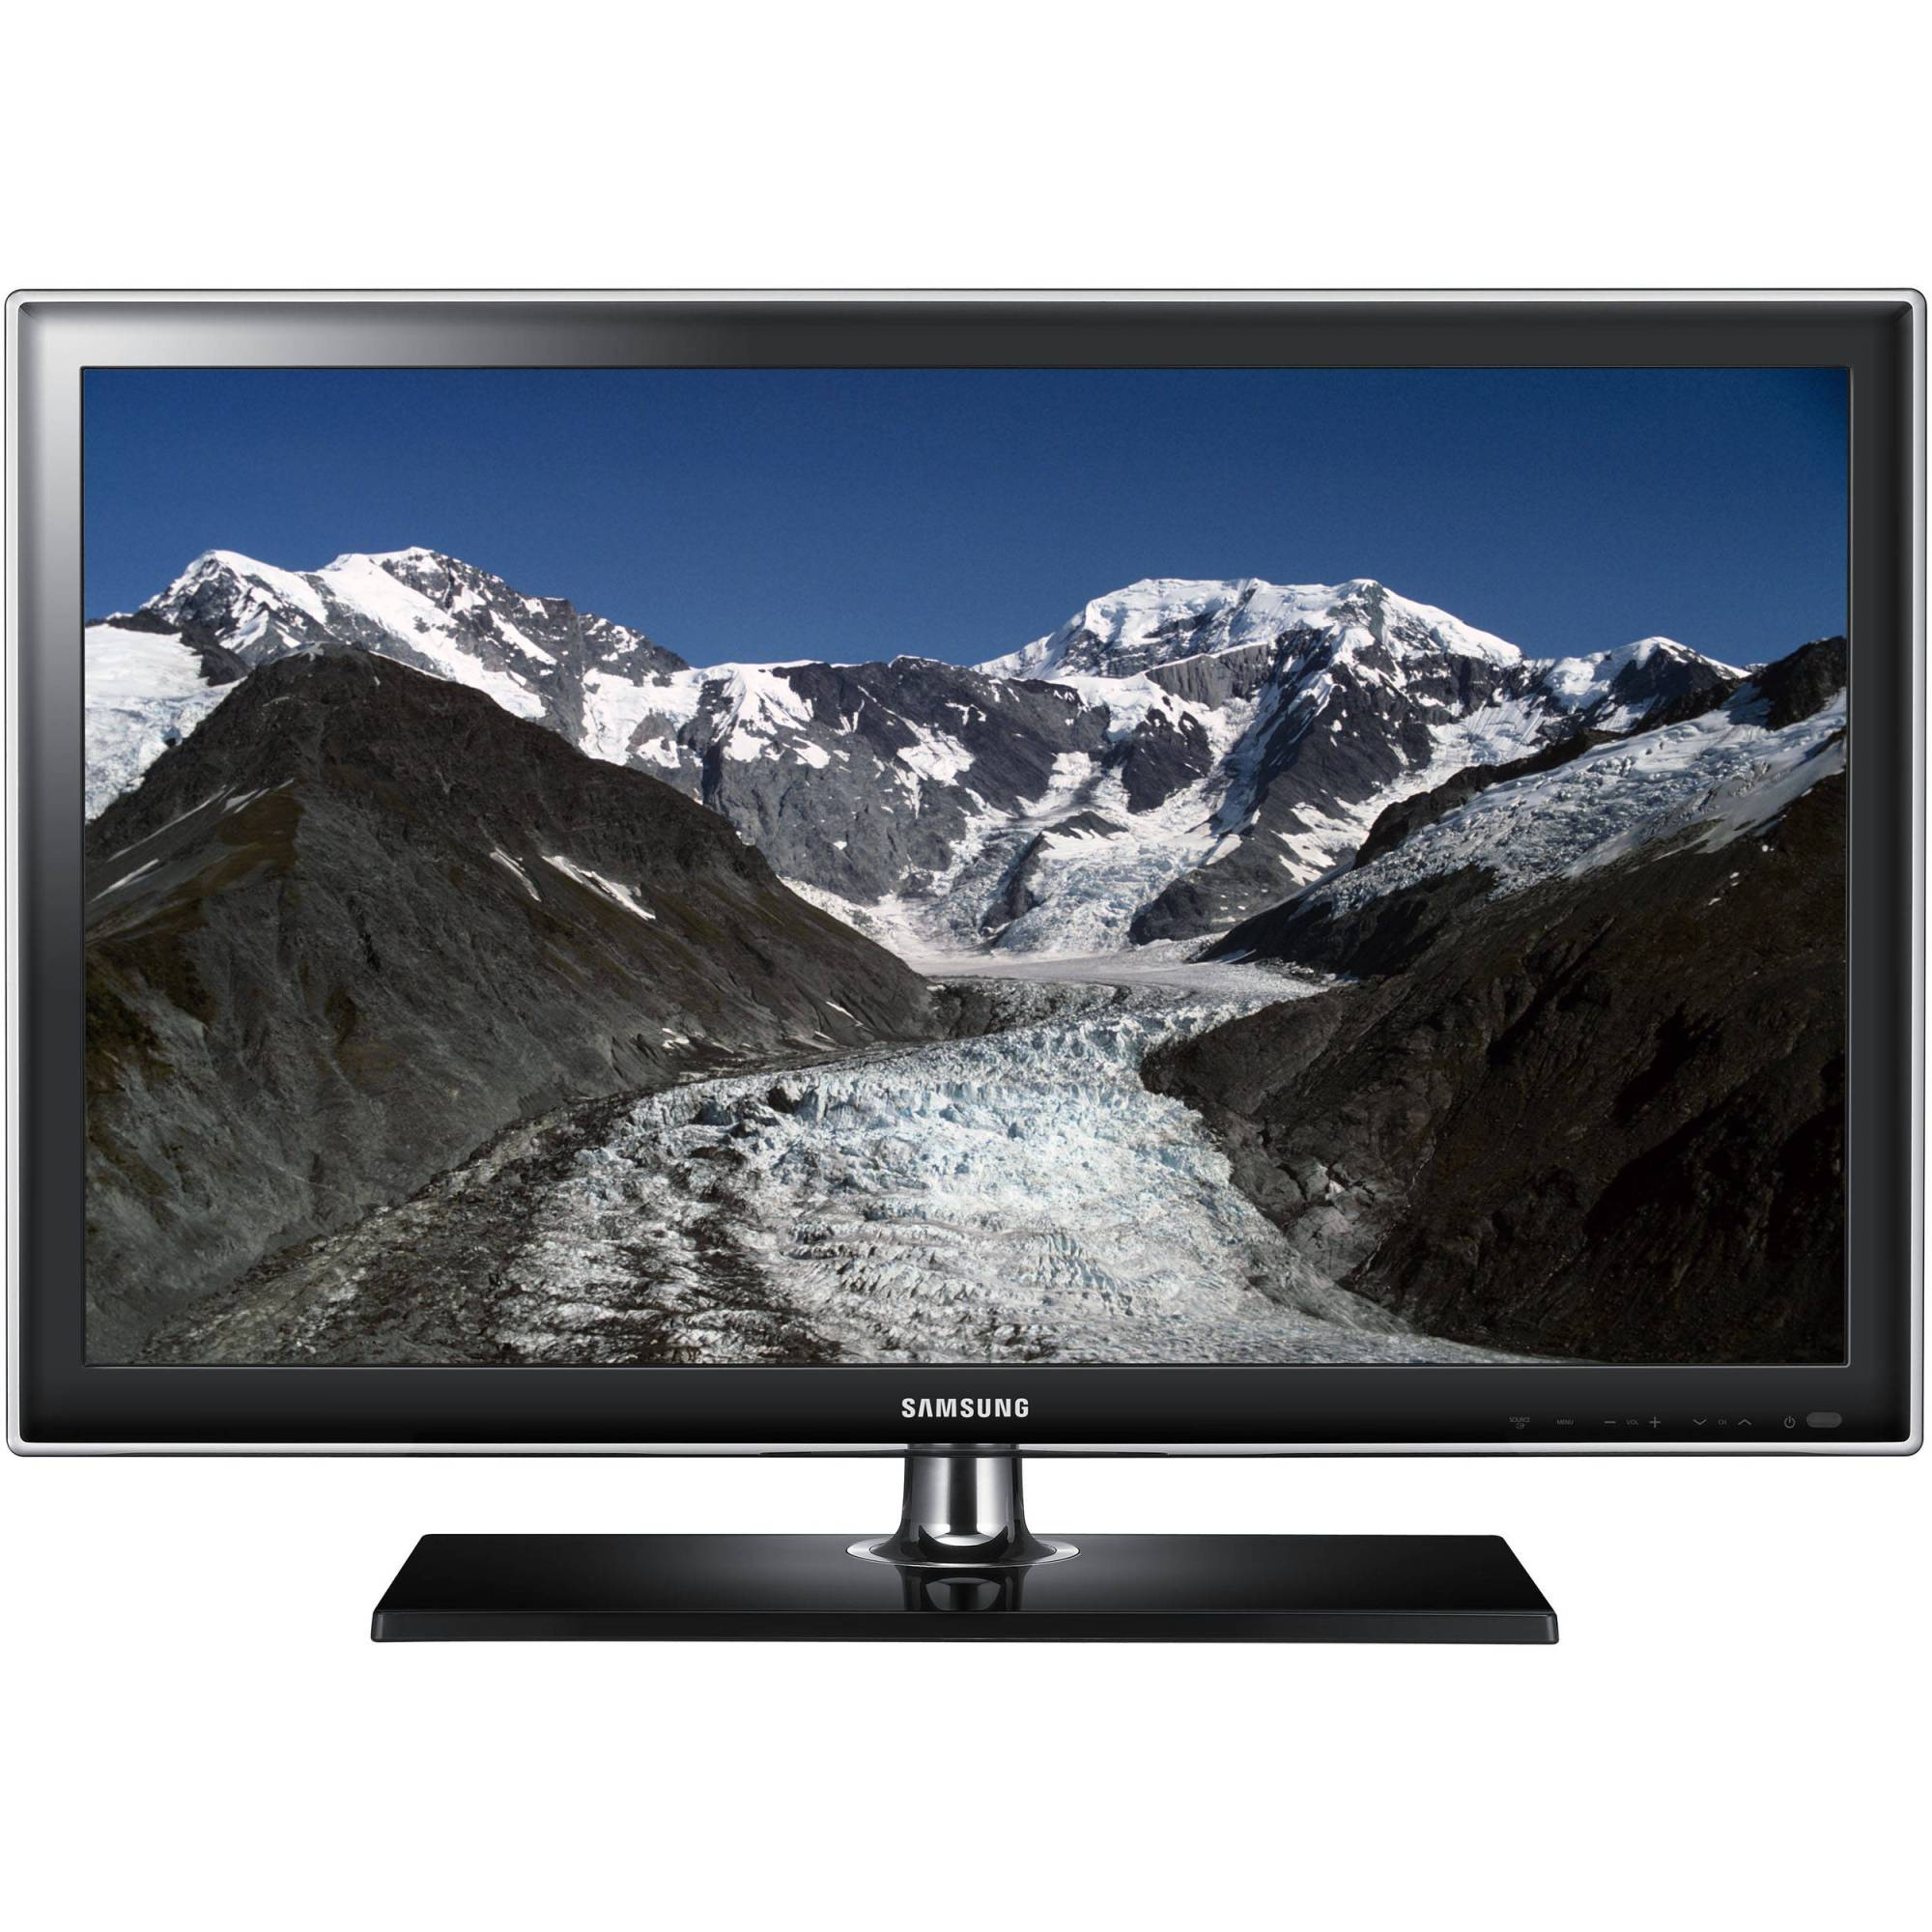 hight resolution of samsung ua 32d4000 32 multi system series 4 led tv